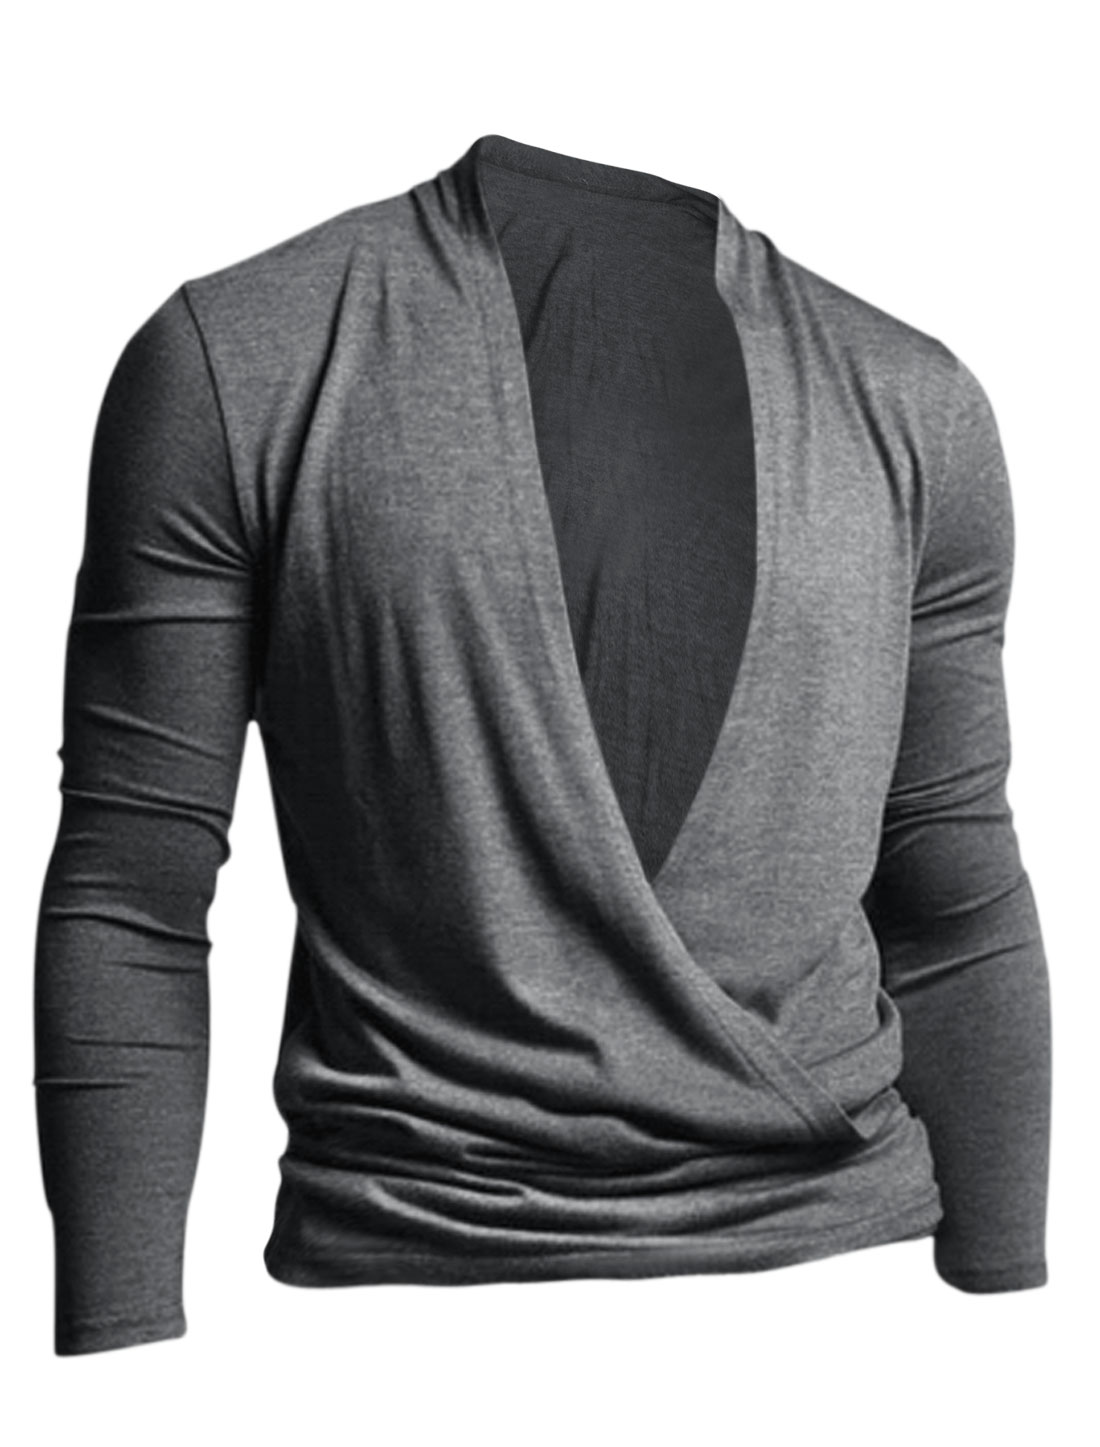 Men Long Sleeve Two Way Wearing Stylish Cardigan Heather Gray M